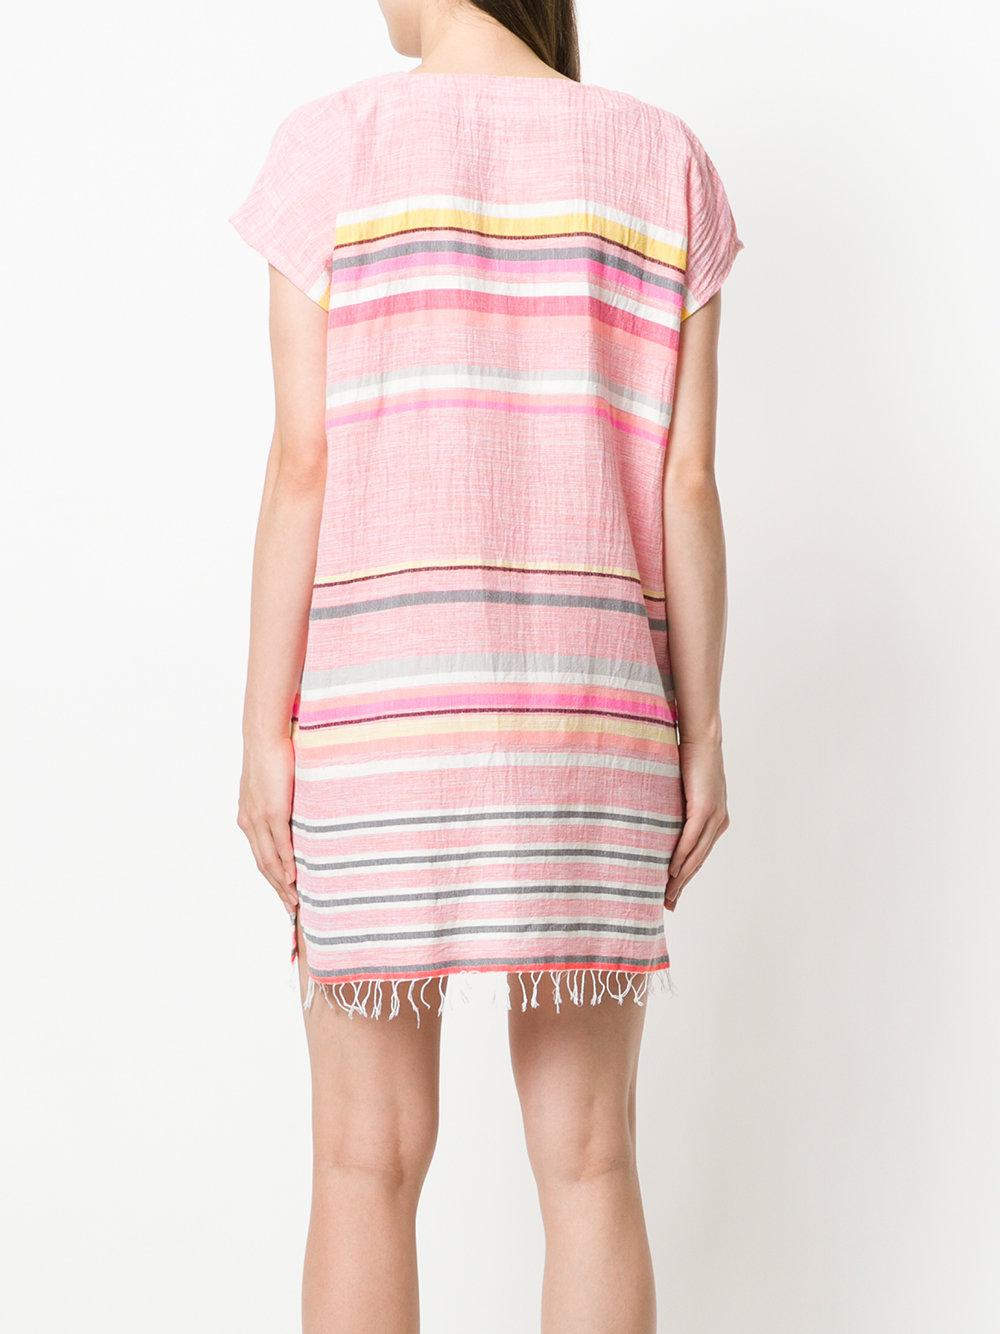 d3c0784afd2d lemlem Striped Sundress in Pink - Lyst